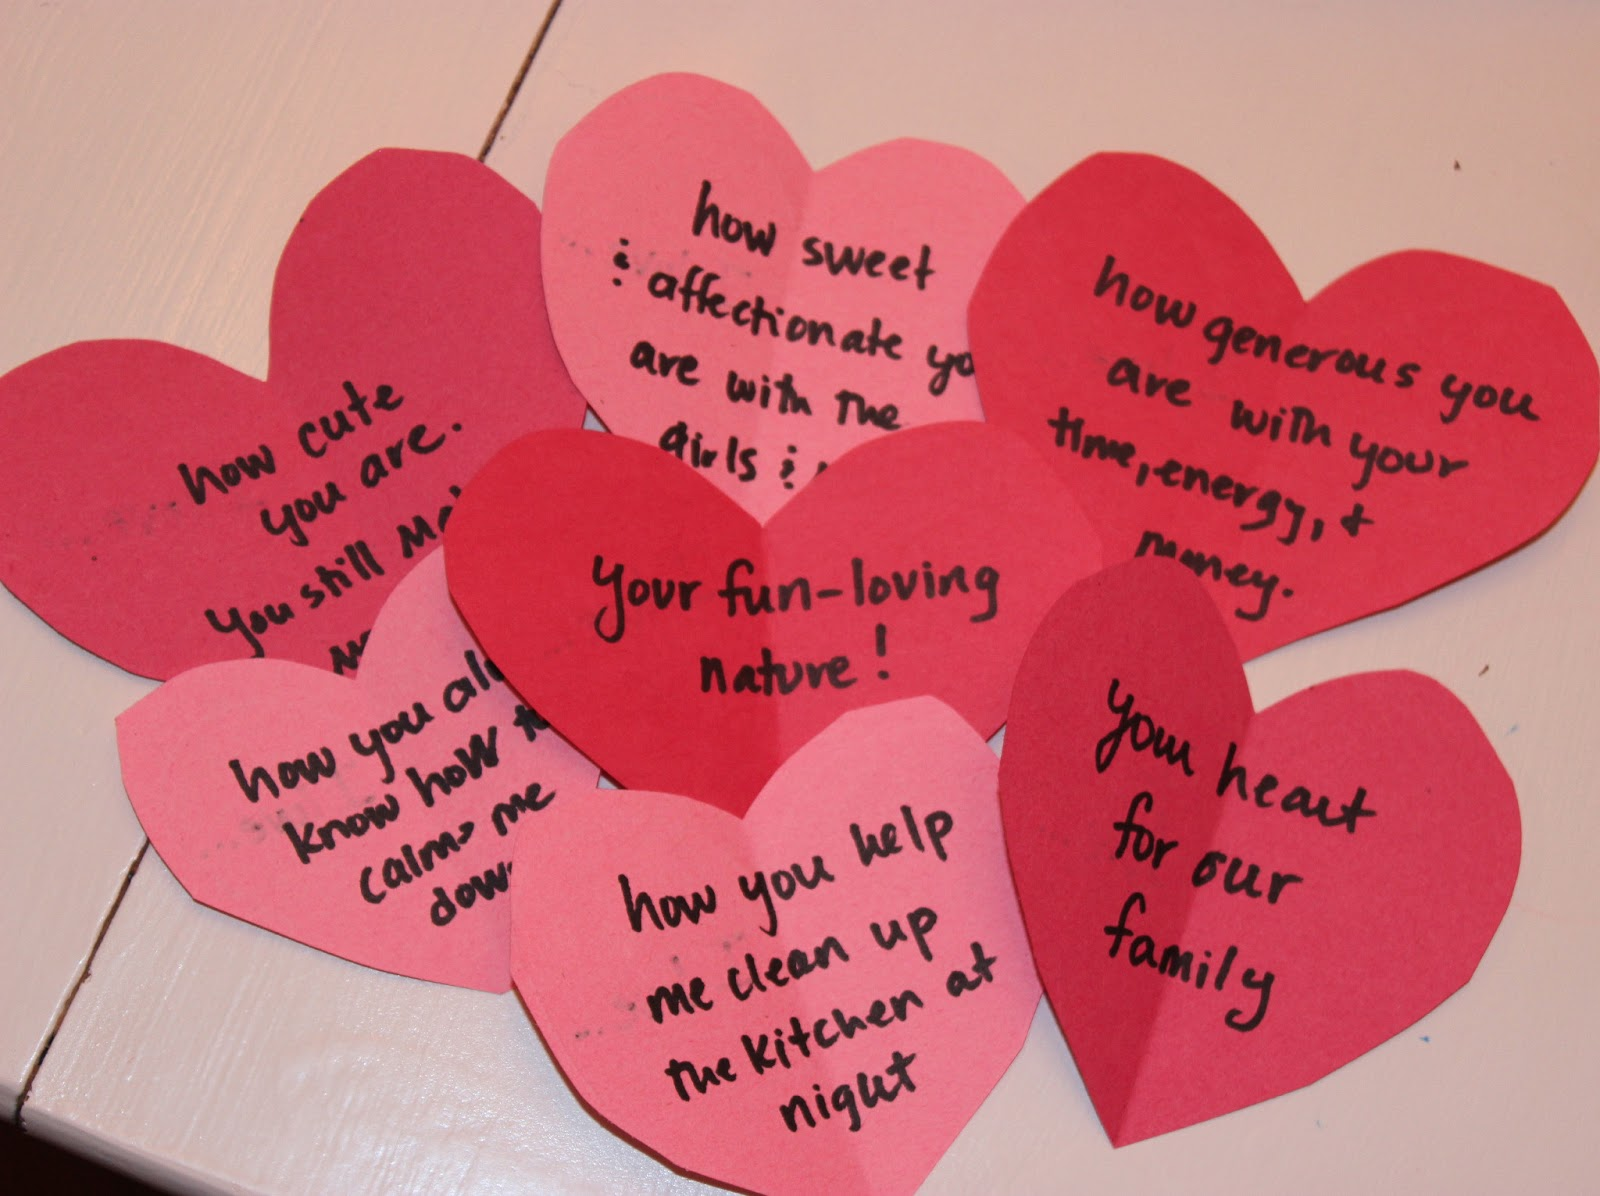 creative ways to show your love